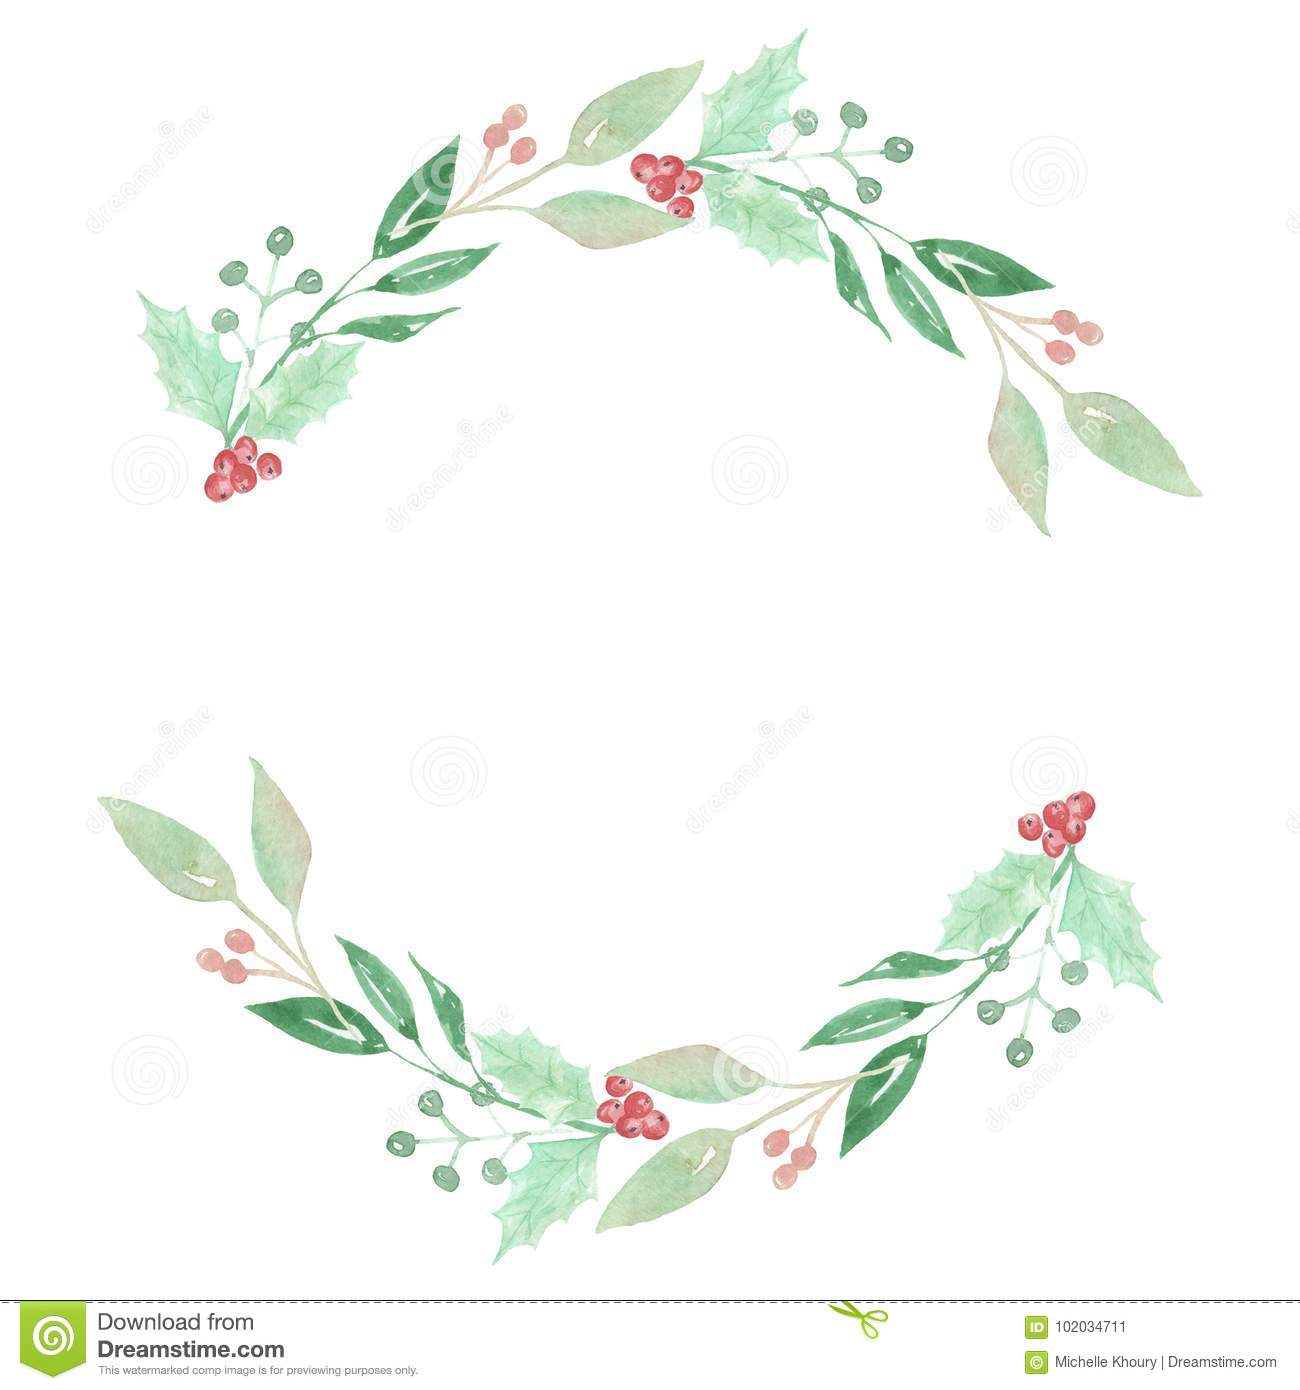 Watercolor Festive Winter Holidays Wreath Holly Berry Garland Stock Illustration Illustration Of Beige Holidays 102034711